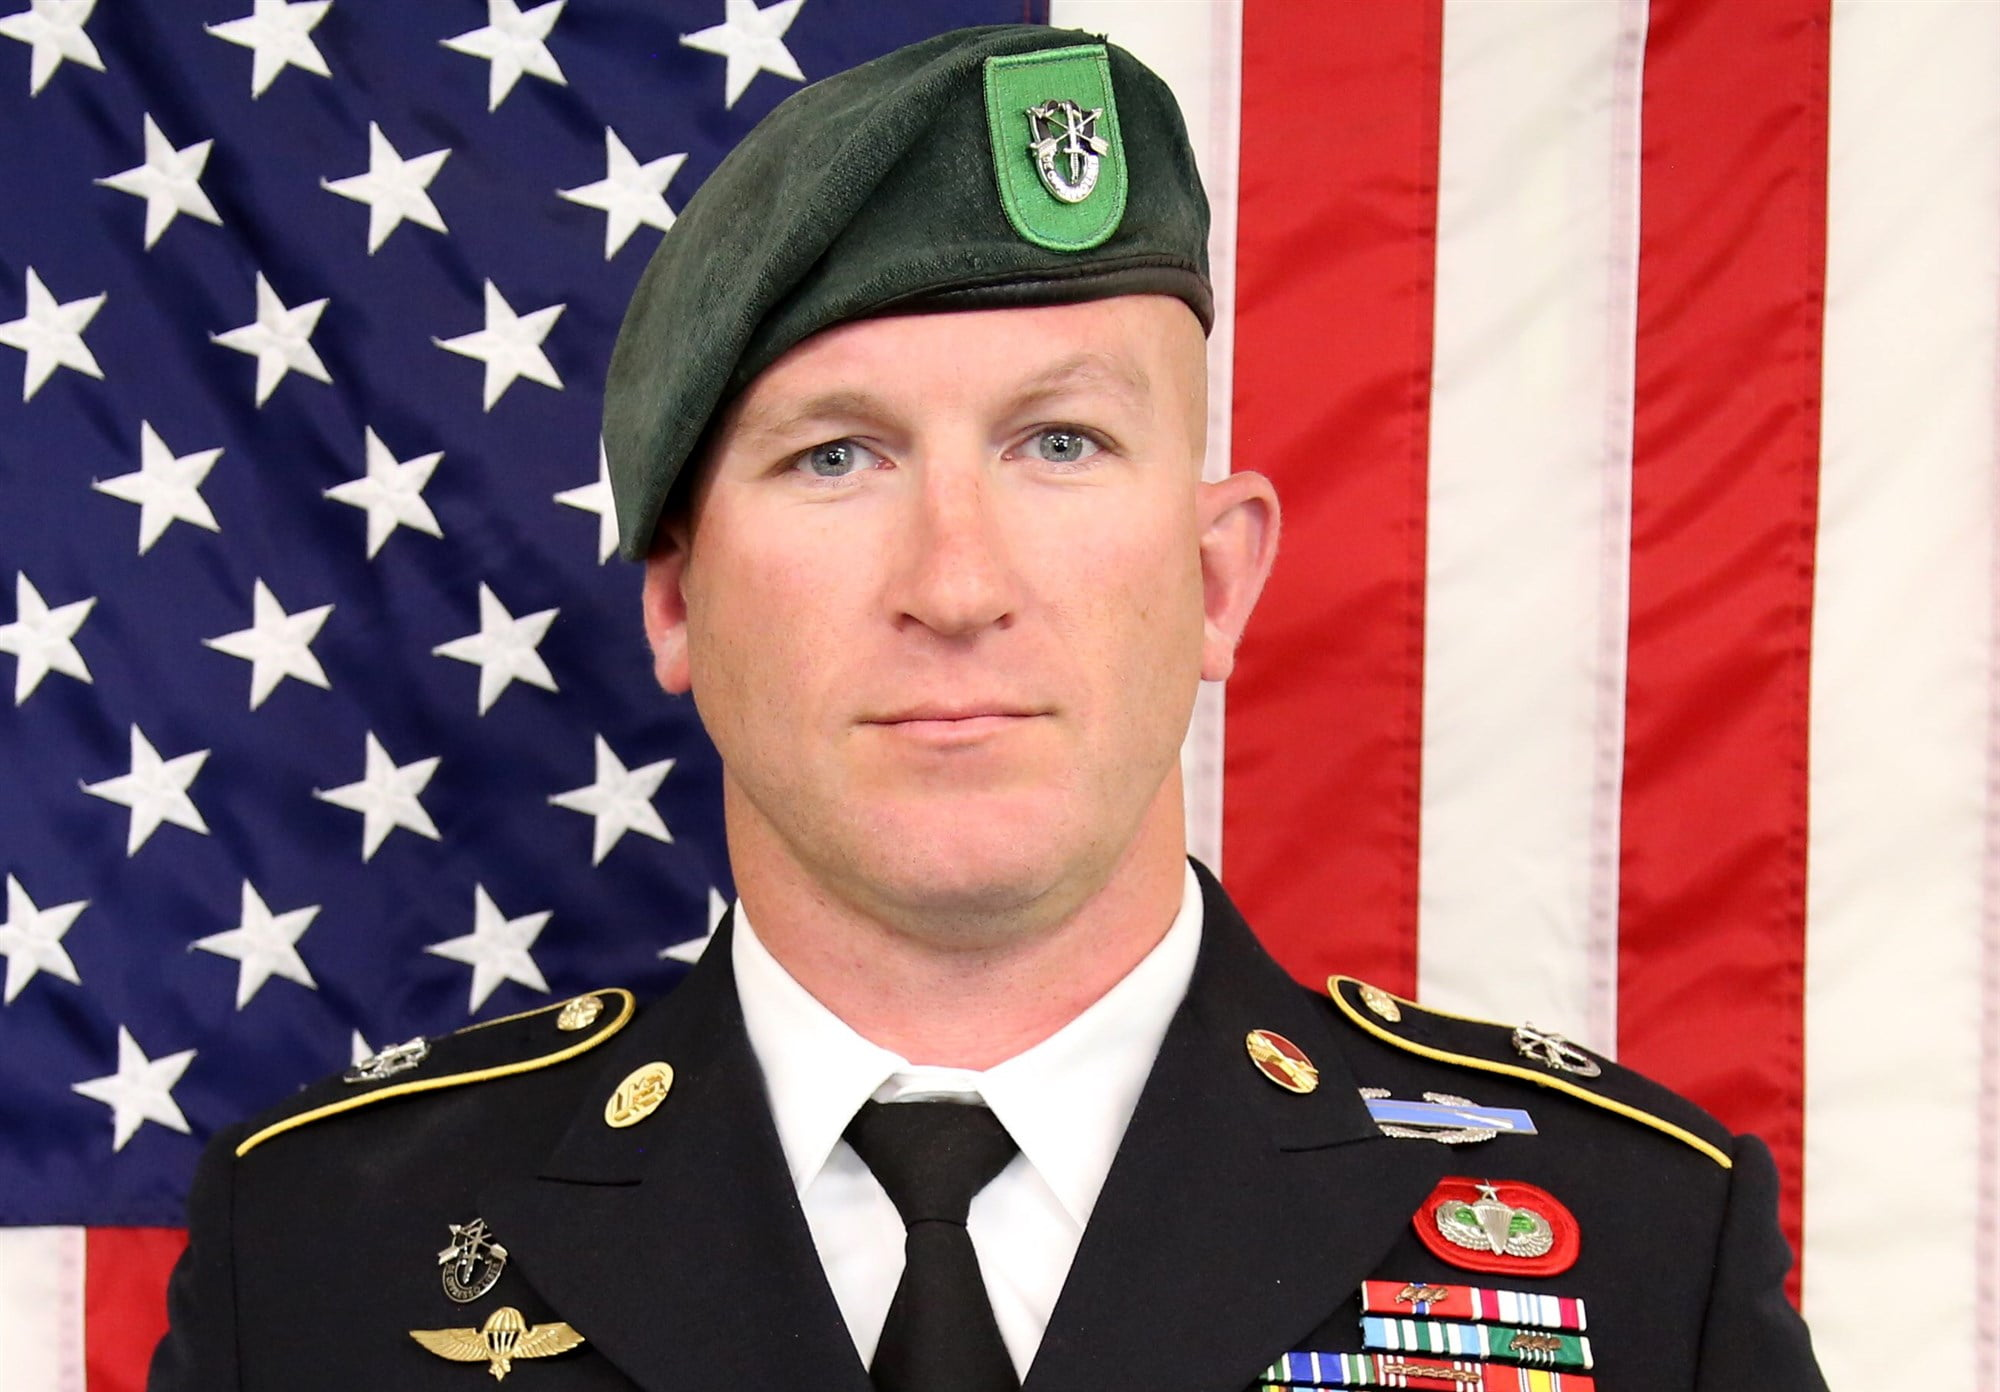 2 - U.S. Special Forces Soldier, Another Victim of War in Afghanistan